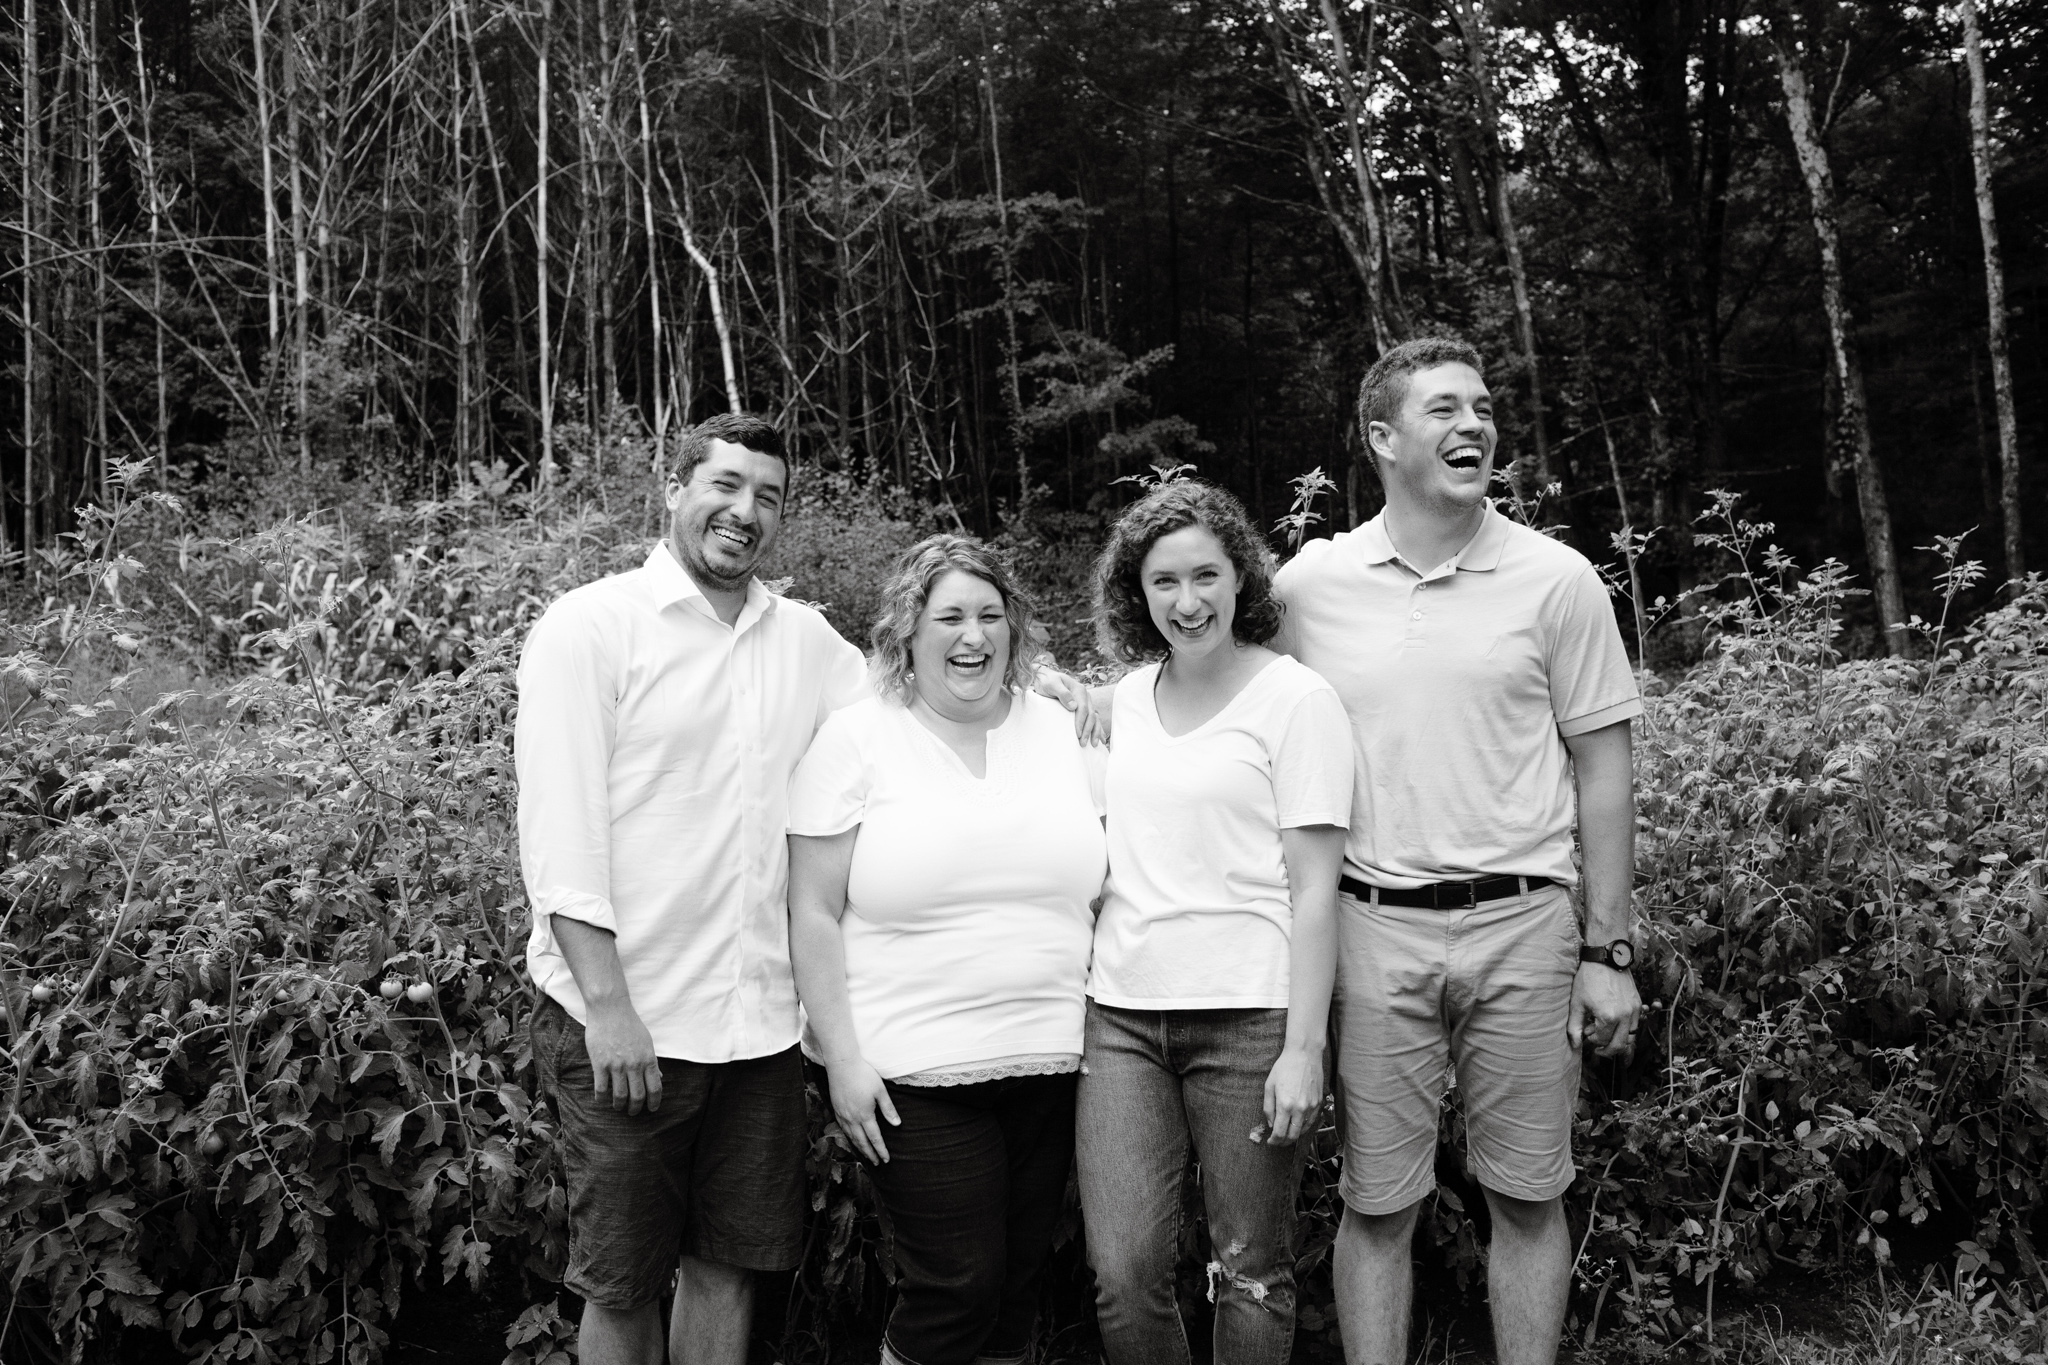 maine-family-photographer-stepheneycollinsphotography-71.jpg